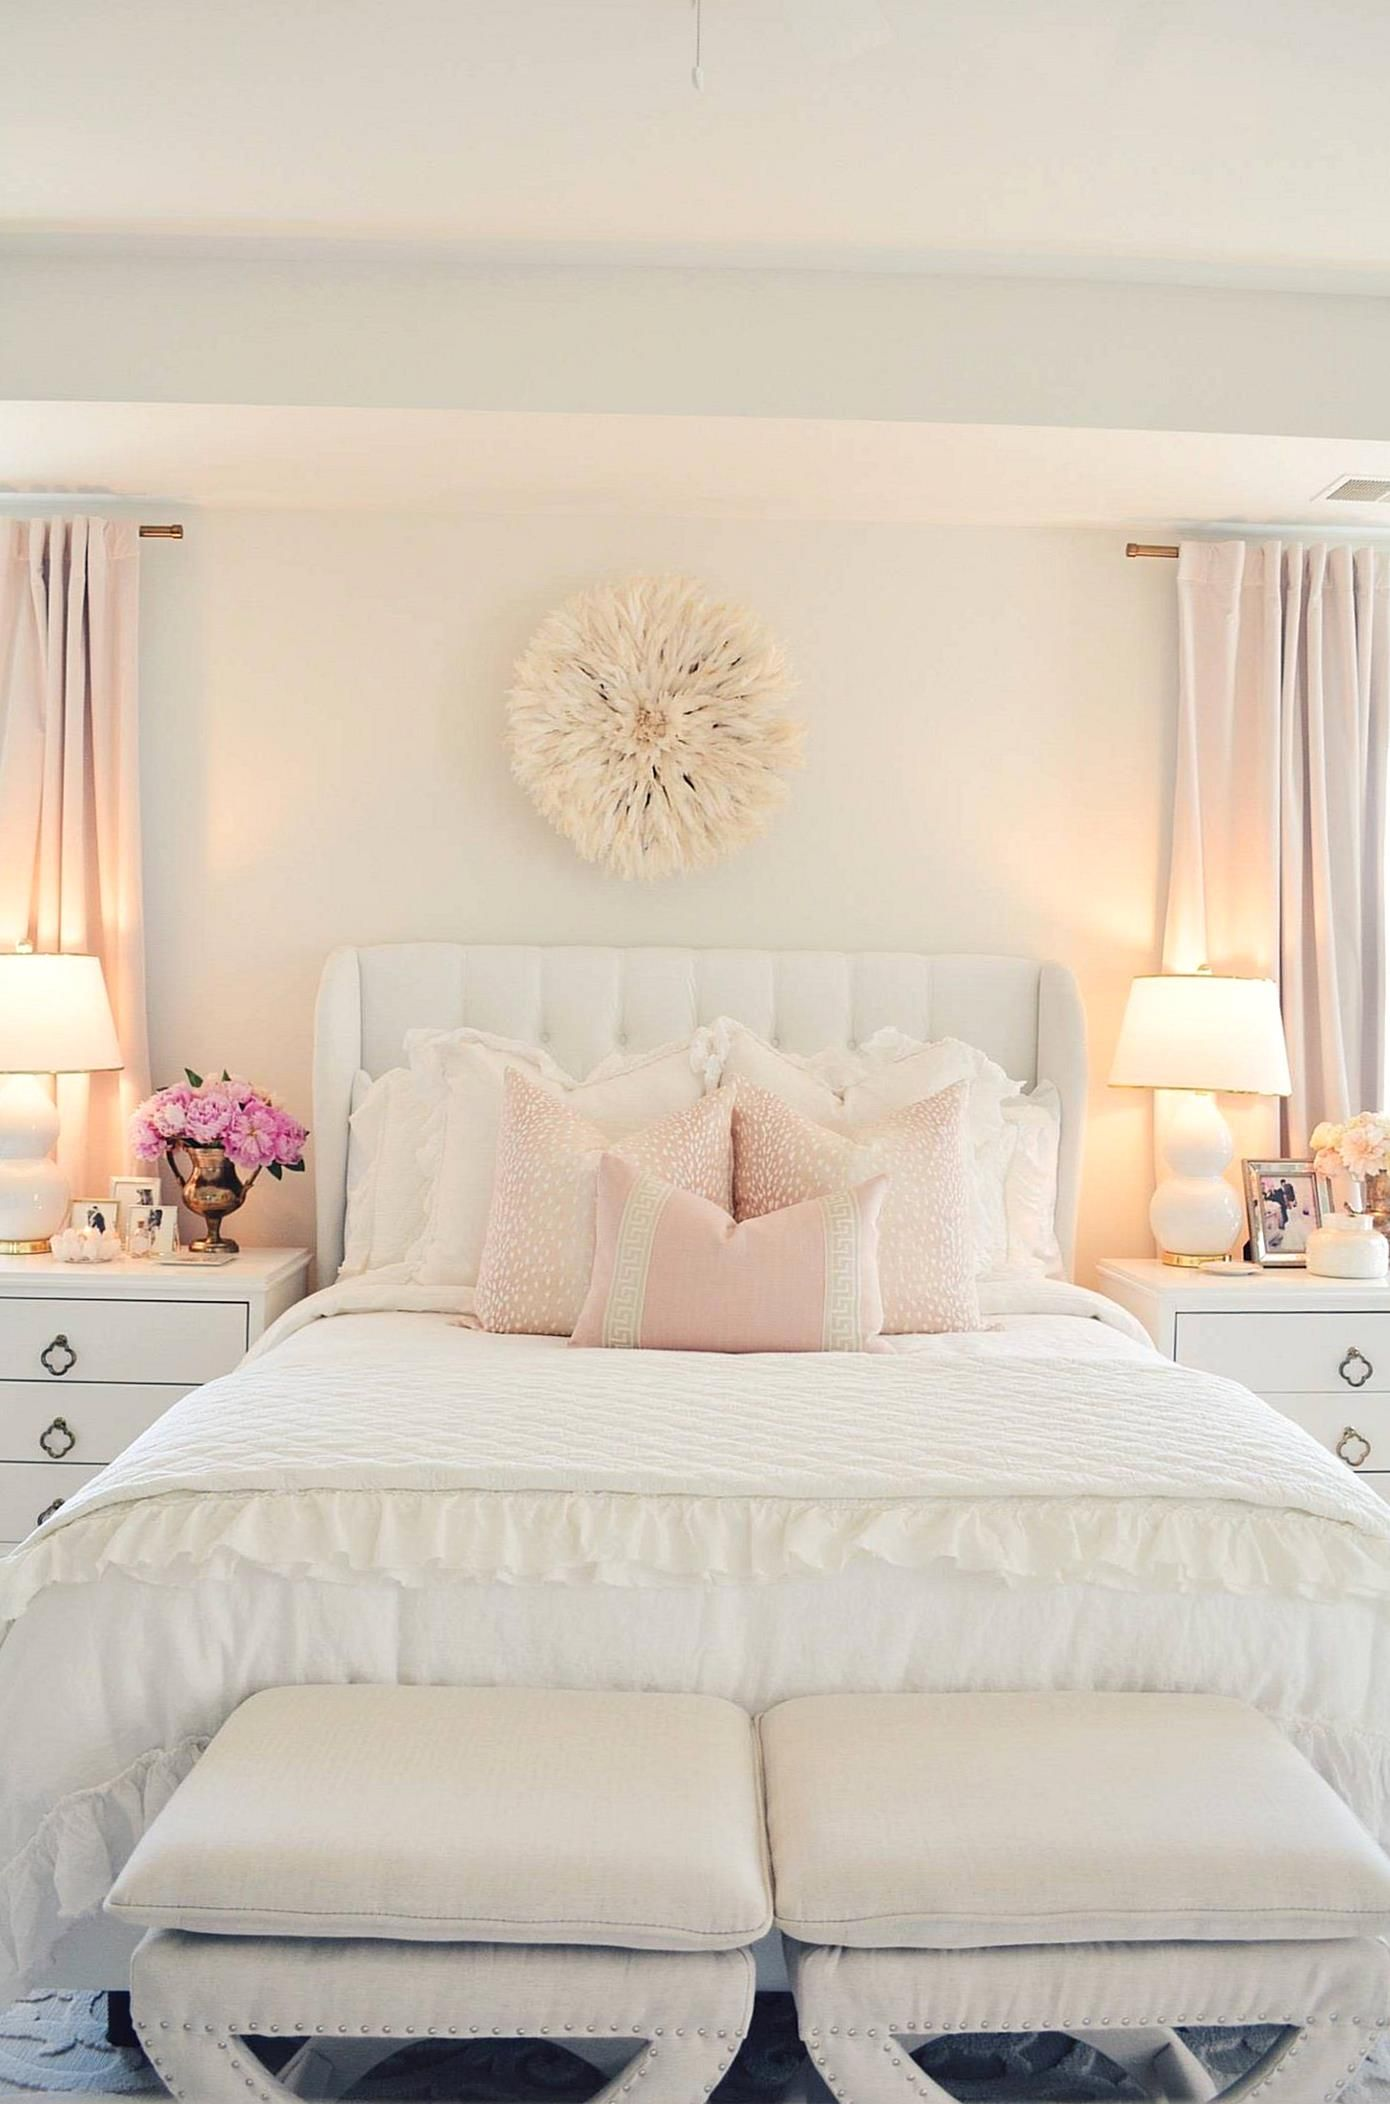 My All White Master Bedroom Recently Got A Mini Makeover For Spring And Im So Excited To Share Wi In 2020 White Master Bedroom Elegant Bedroom Master Bedroom Furniture